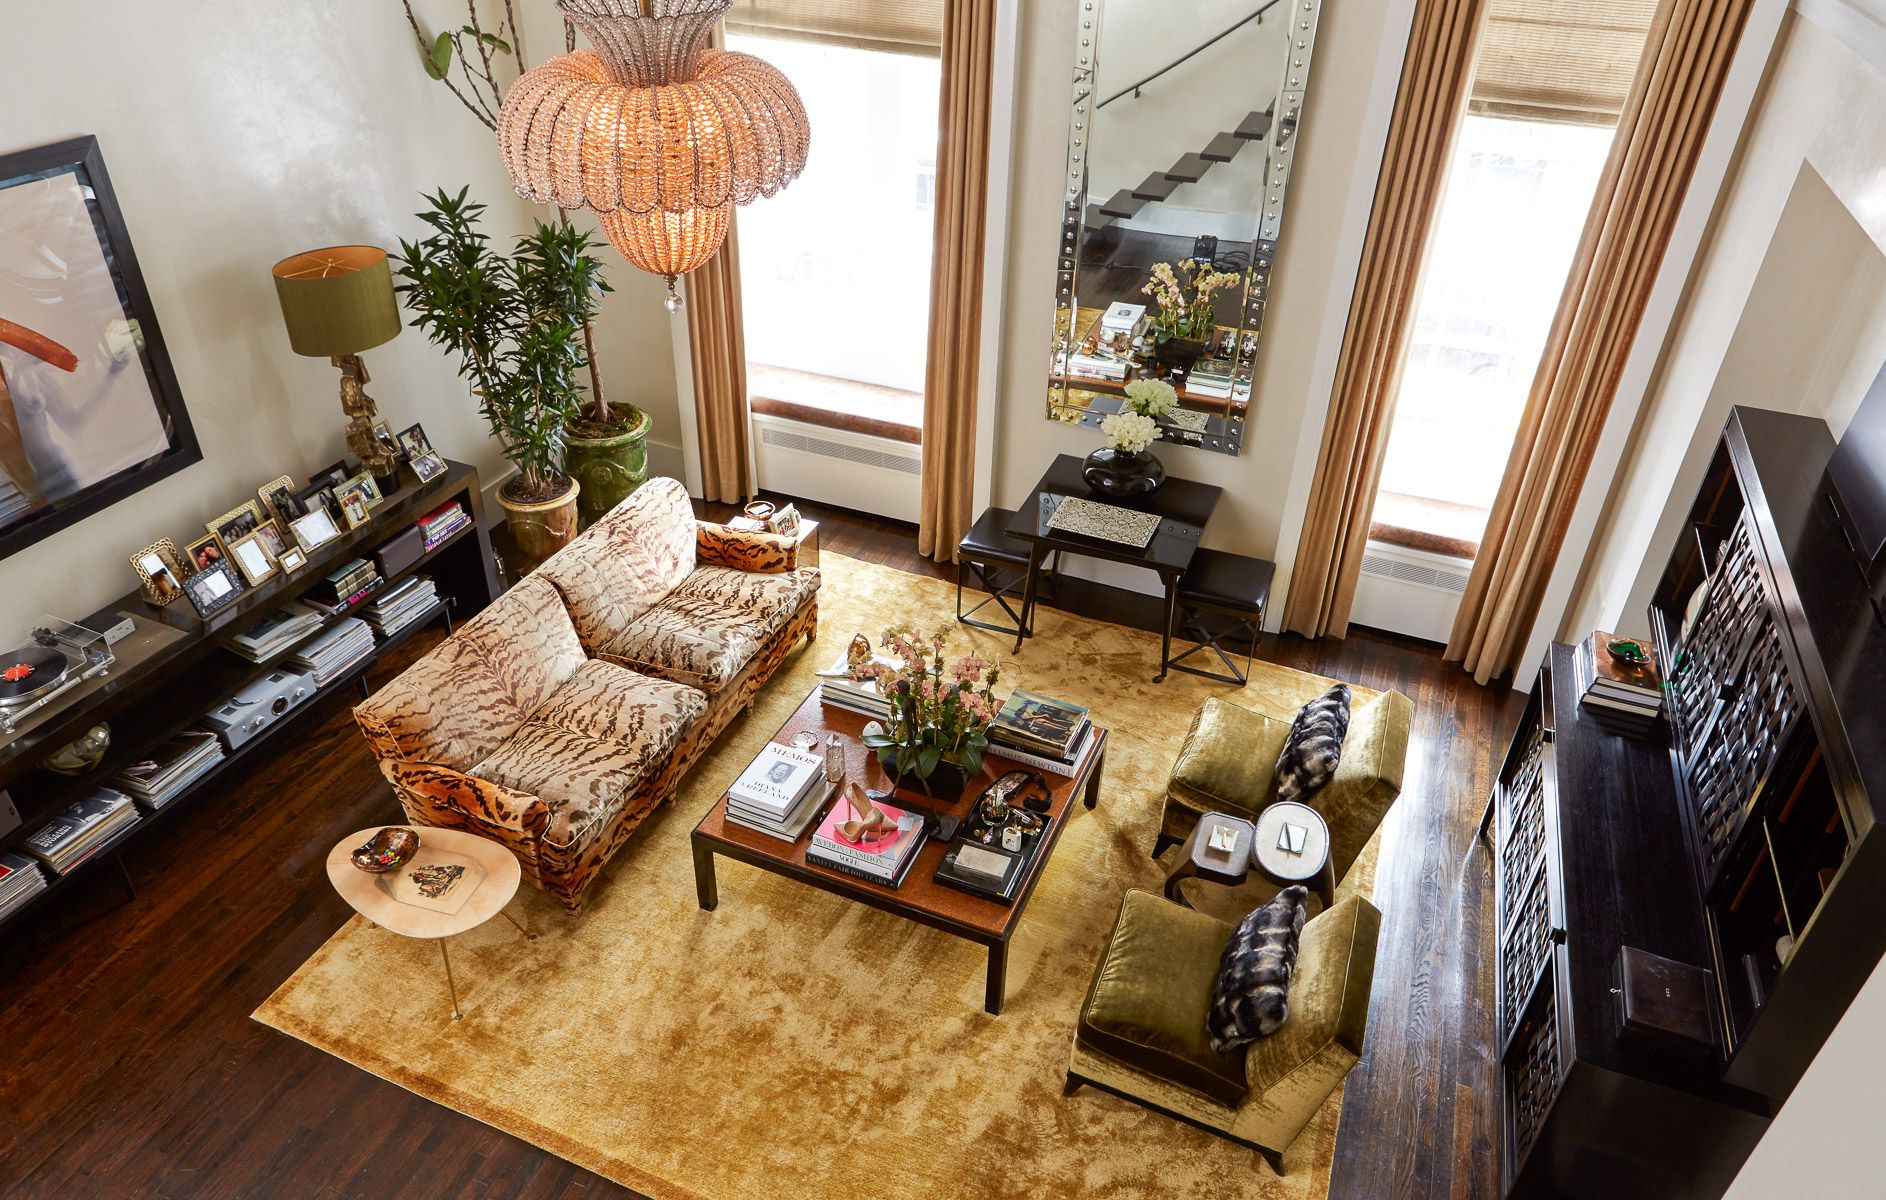 The Lovely Apartment Of Carole Radziwill From Real Housewives New York